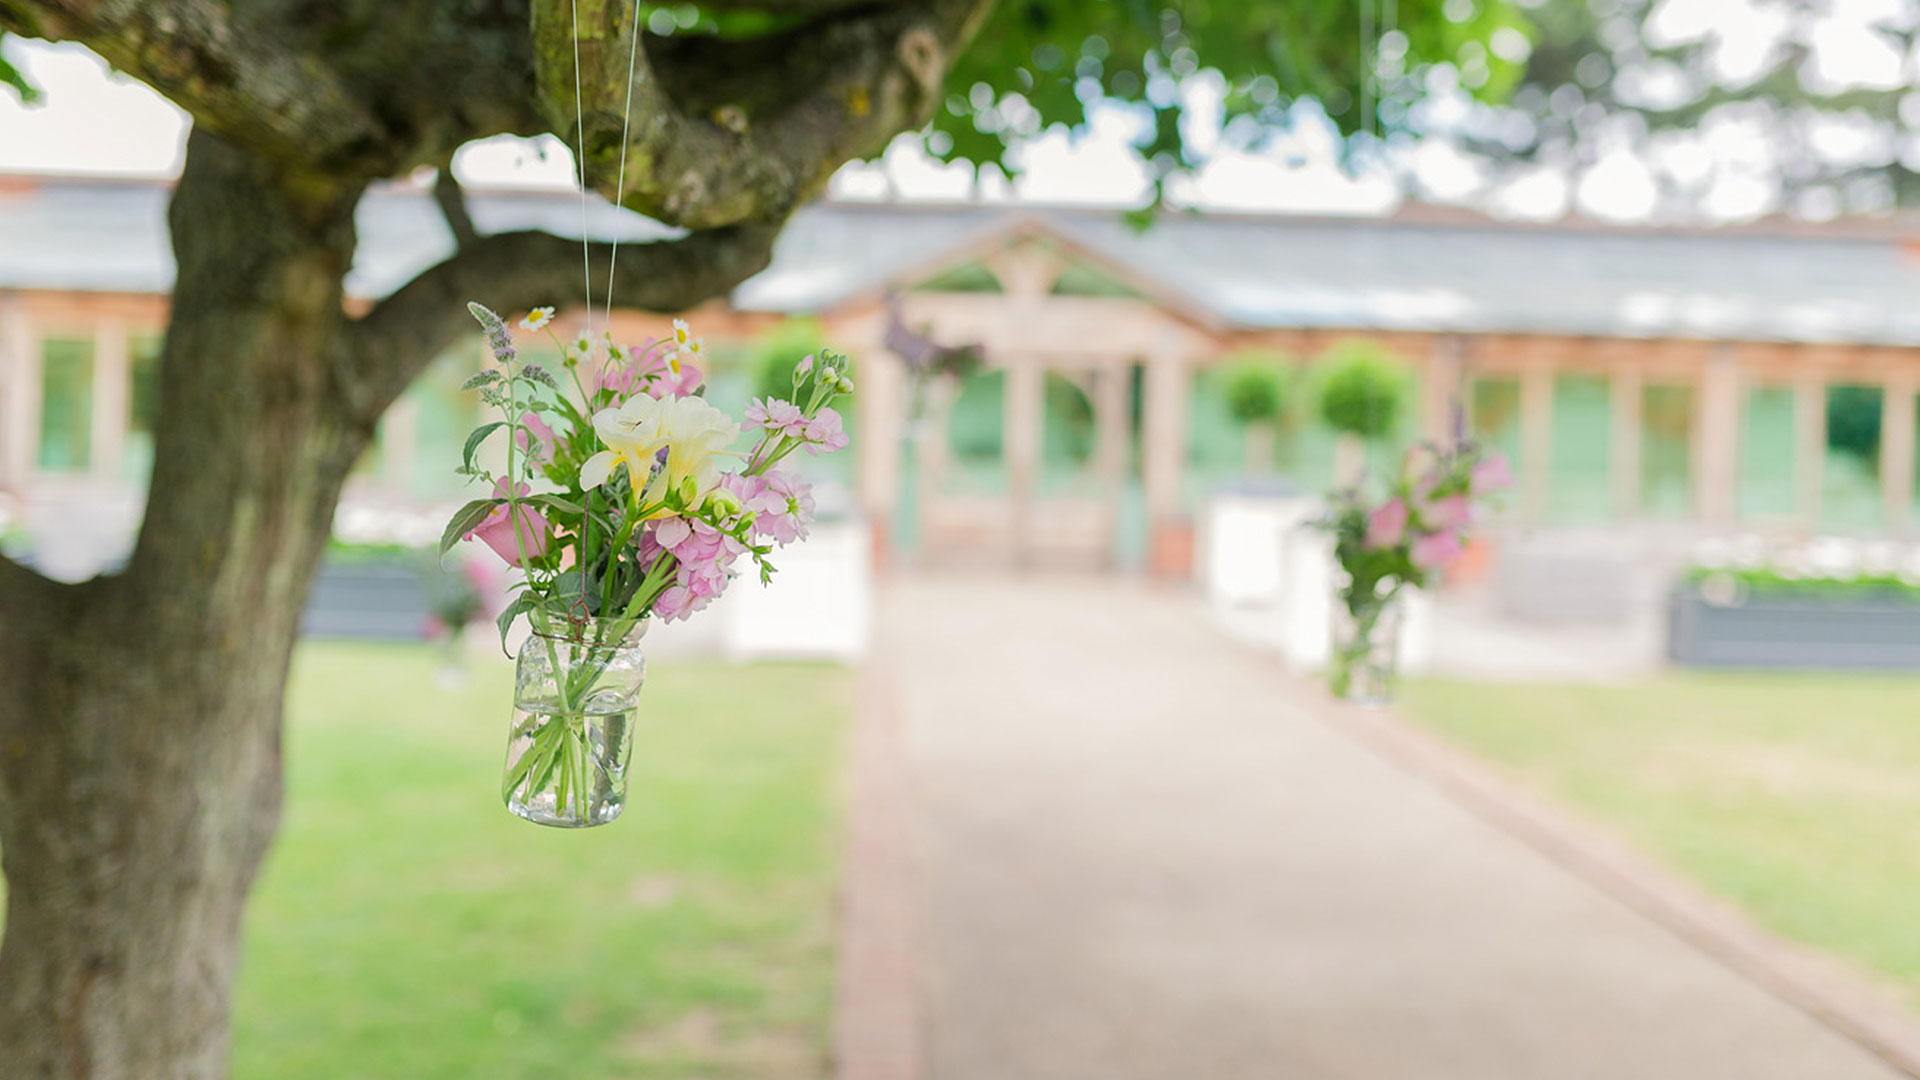 Hanging wedding flowers in clear glass jars from the trees in the Walled Garden is a gorgeous idea for a spring wedding